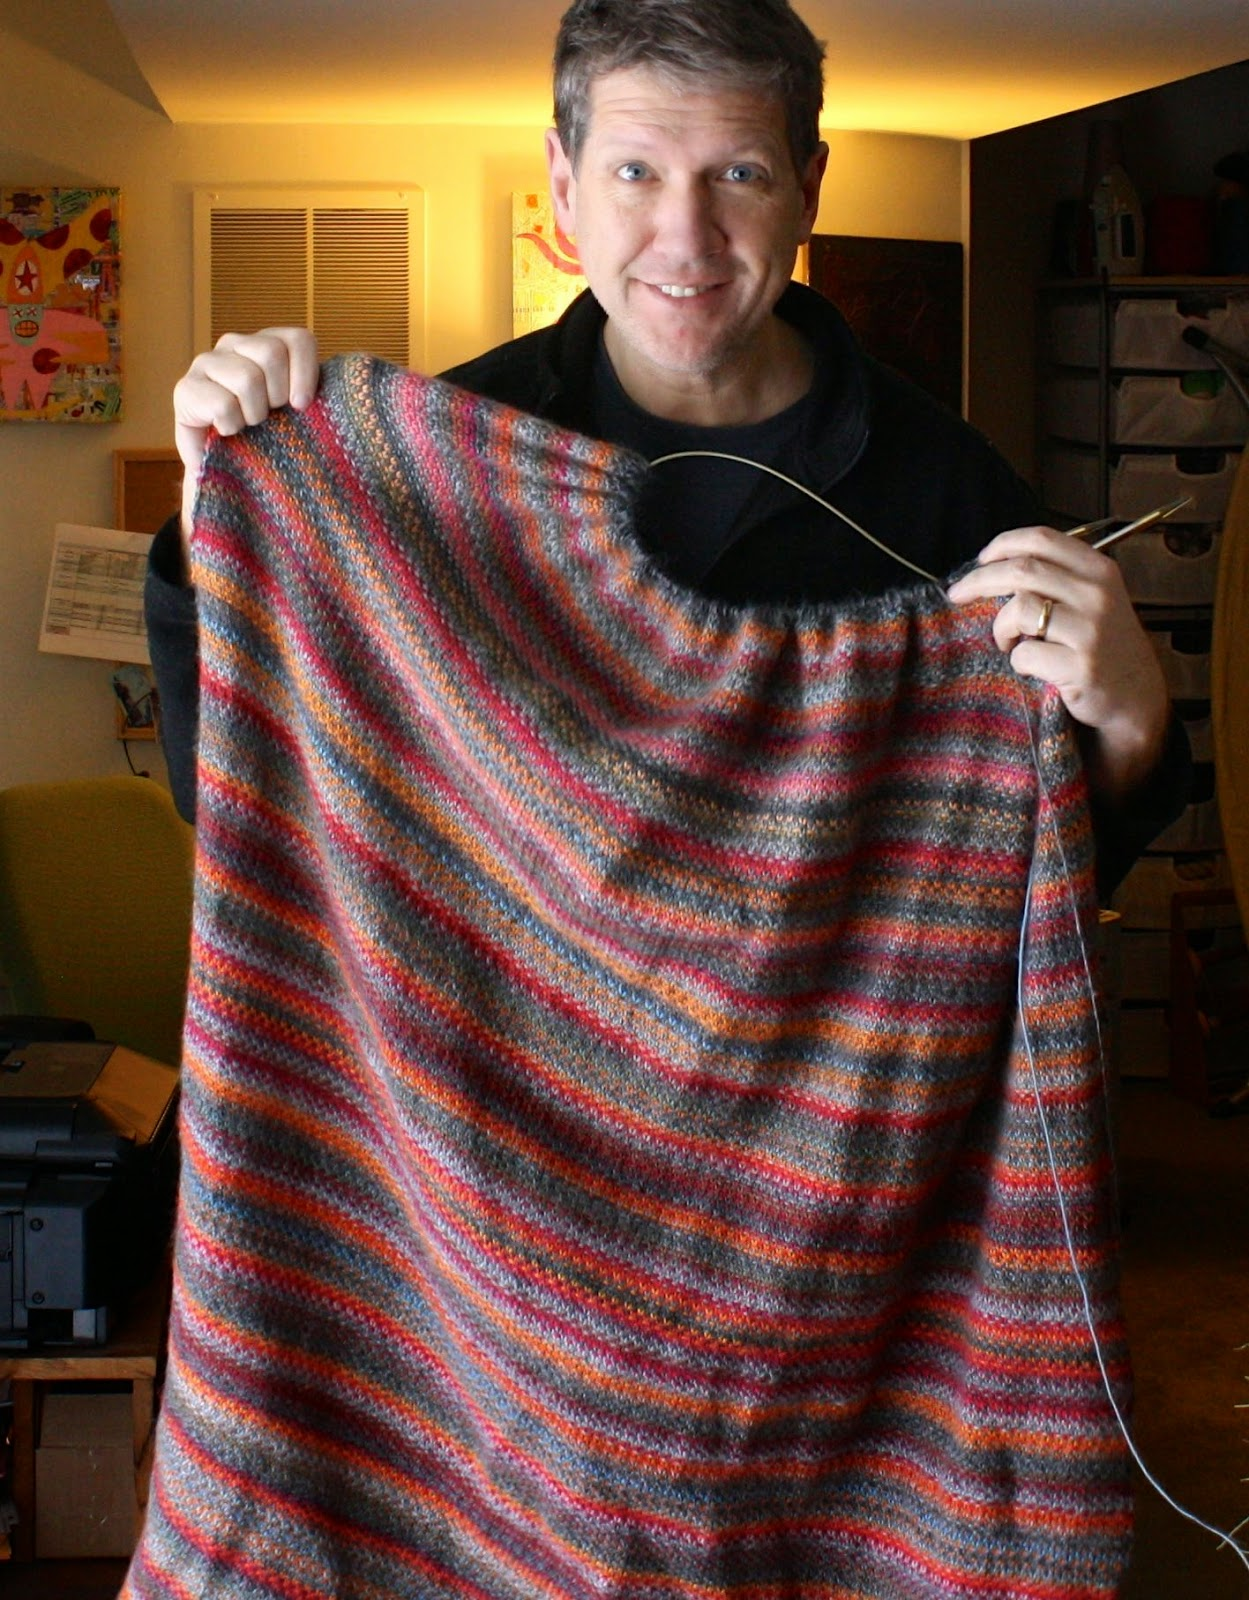 Knitting Blanket Stitch Seam : QueerJoes Knitting Blog: Pros and Cons of Linen Stitch